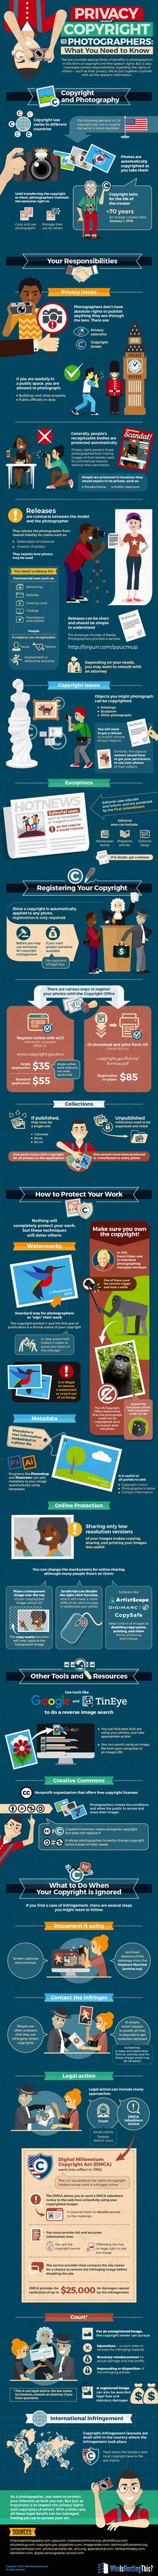 What Photographers Need to Know about Privacy and Copyright Infographic. Topic: photography